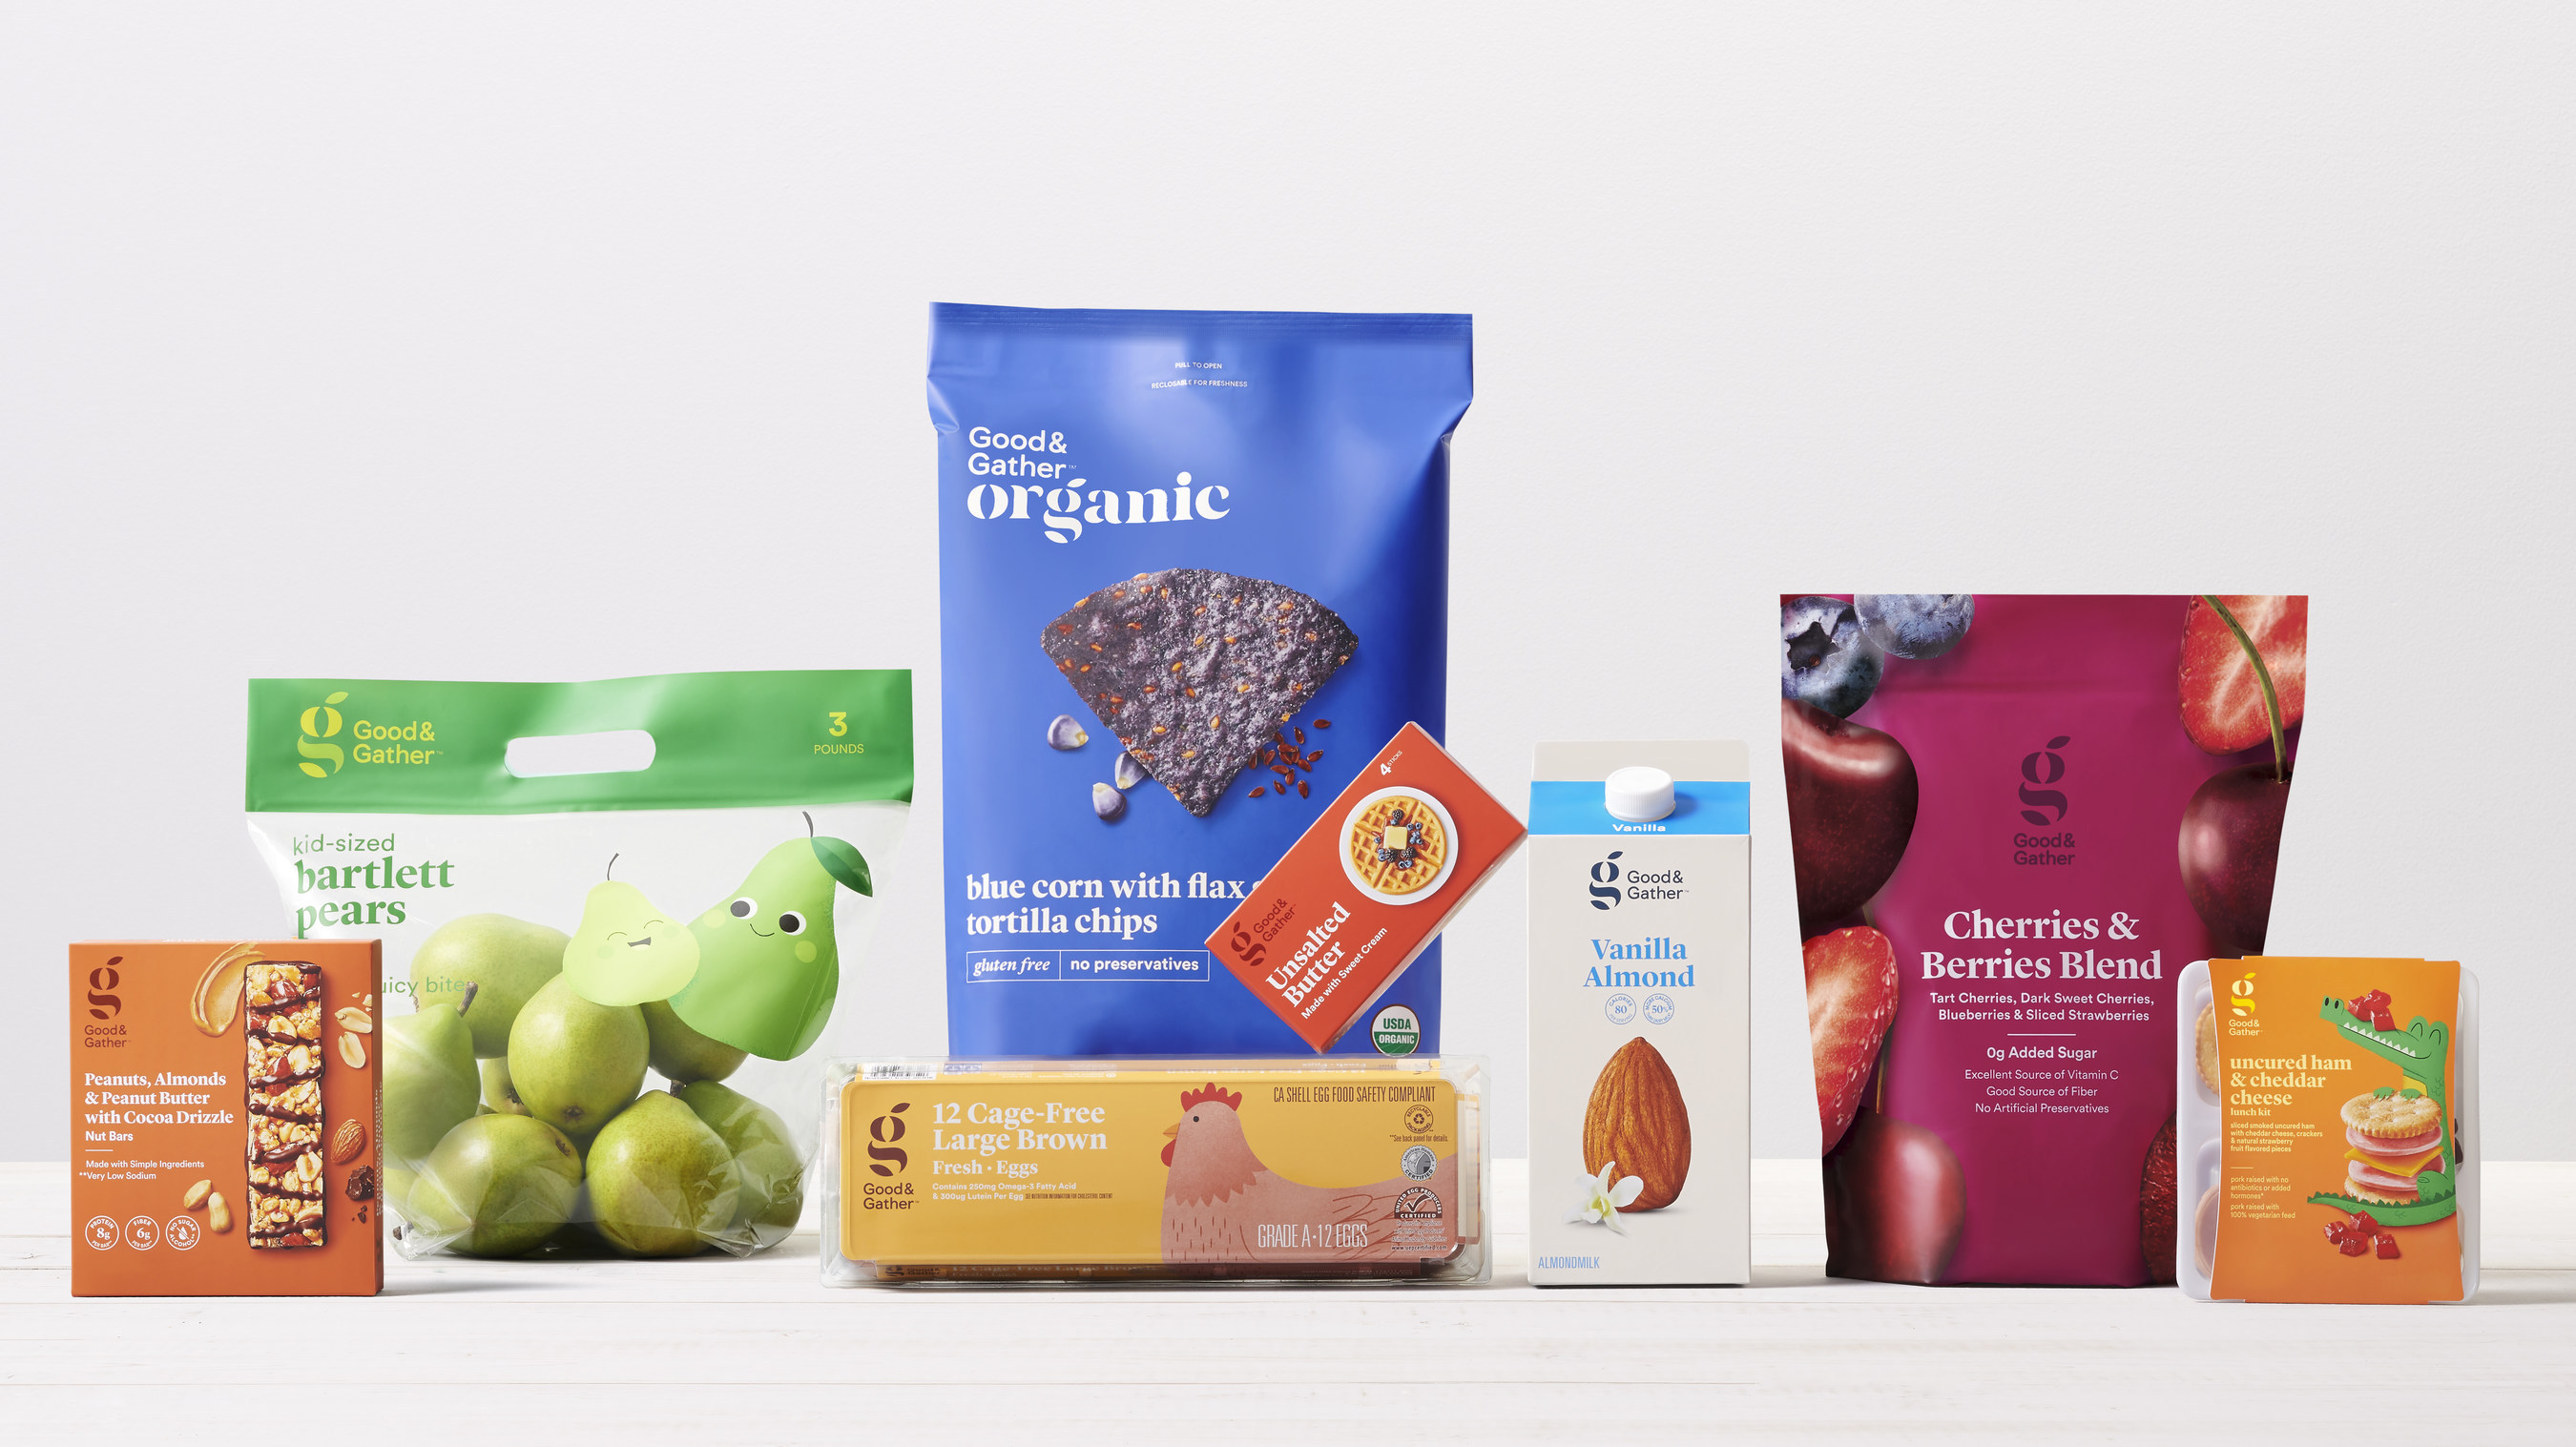 The first 650 Good & Gather productswill be available at stores nationwide and at Target.com starting Sept. 15. They include: bagged salads, cheese, granola, sparkling water, deli fresh entrees and sides, fruit squeezers, frozen fruit, fresh veg